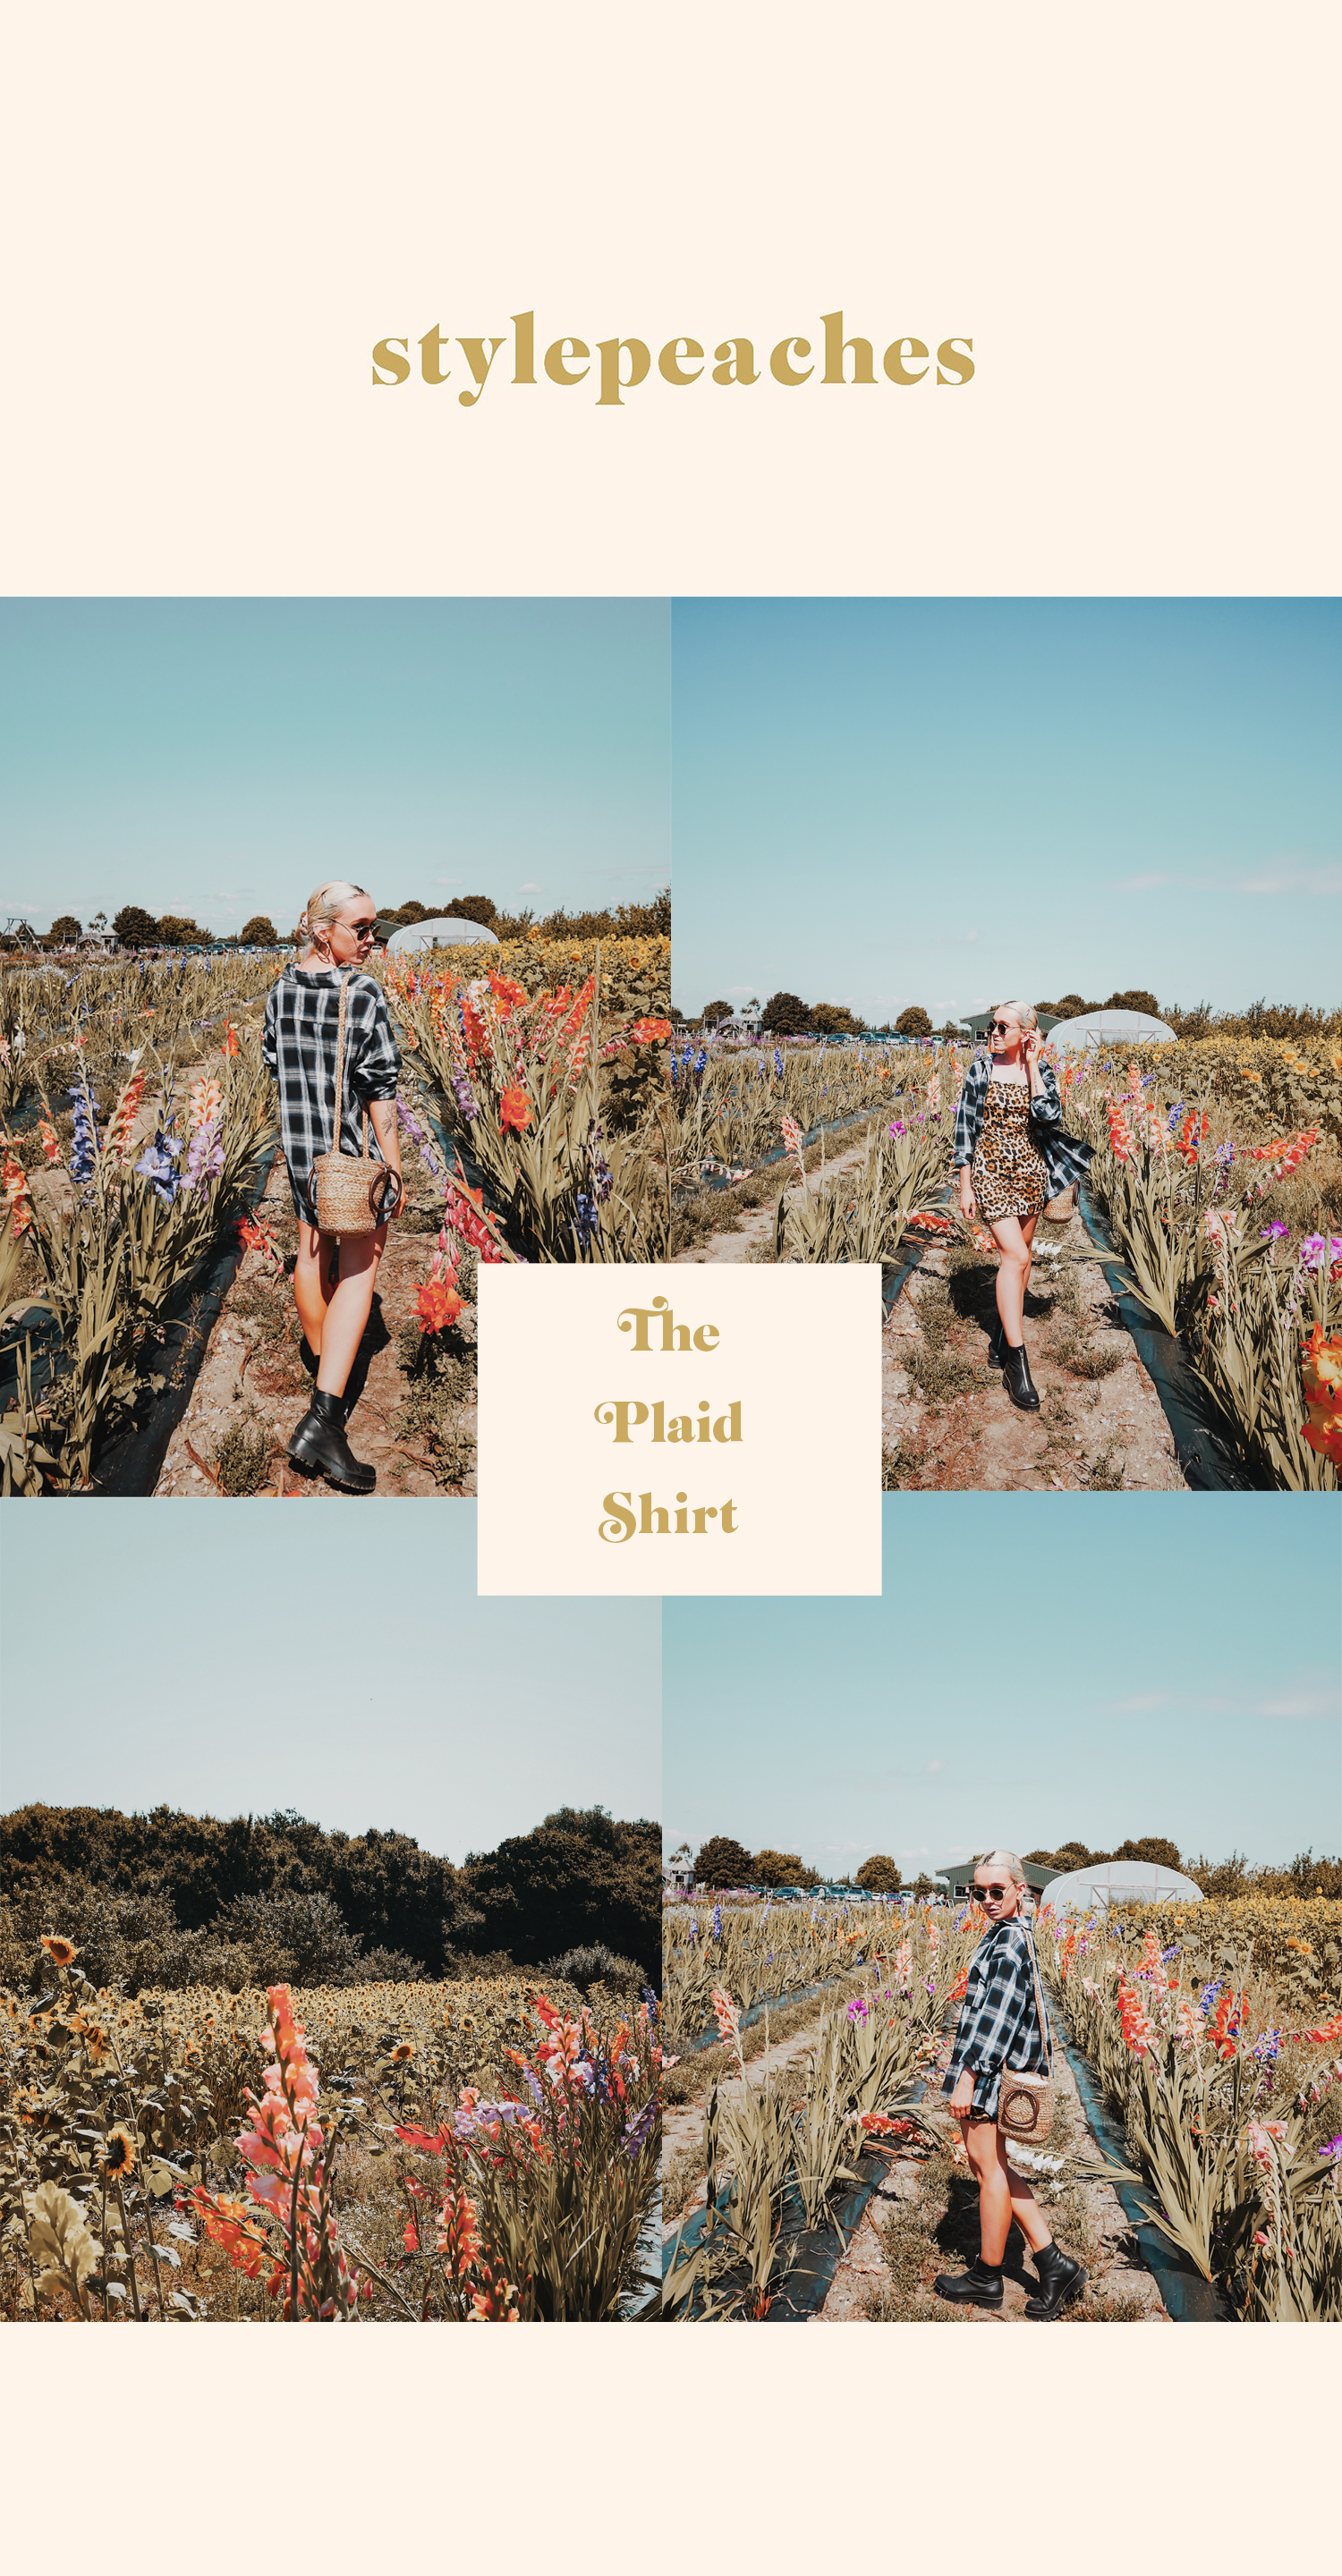 styling the plaid shirt - stylepeaches